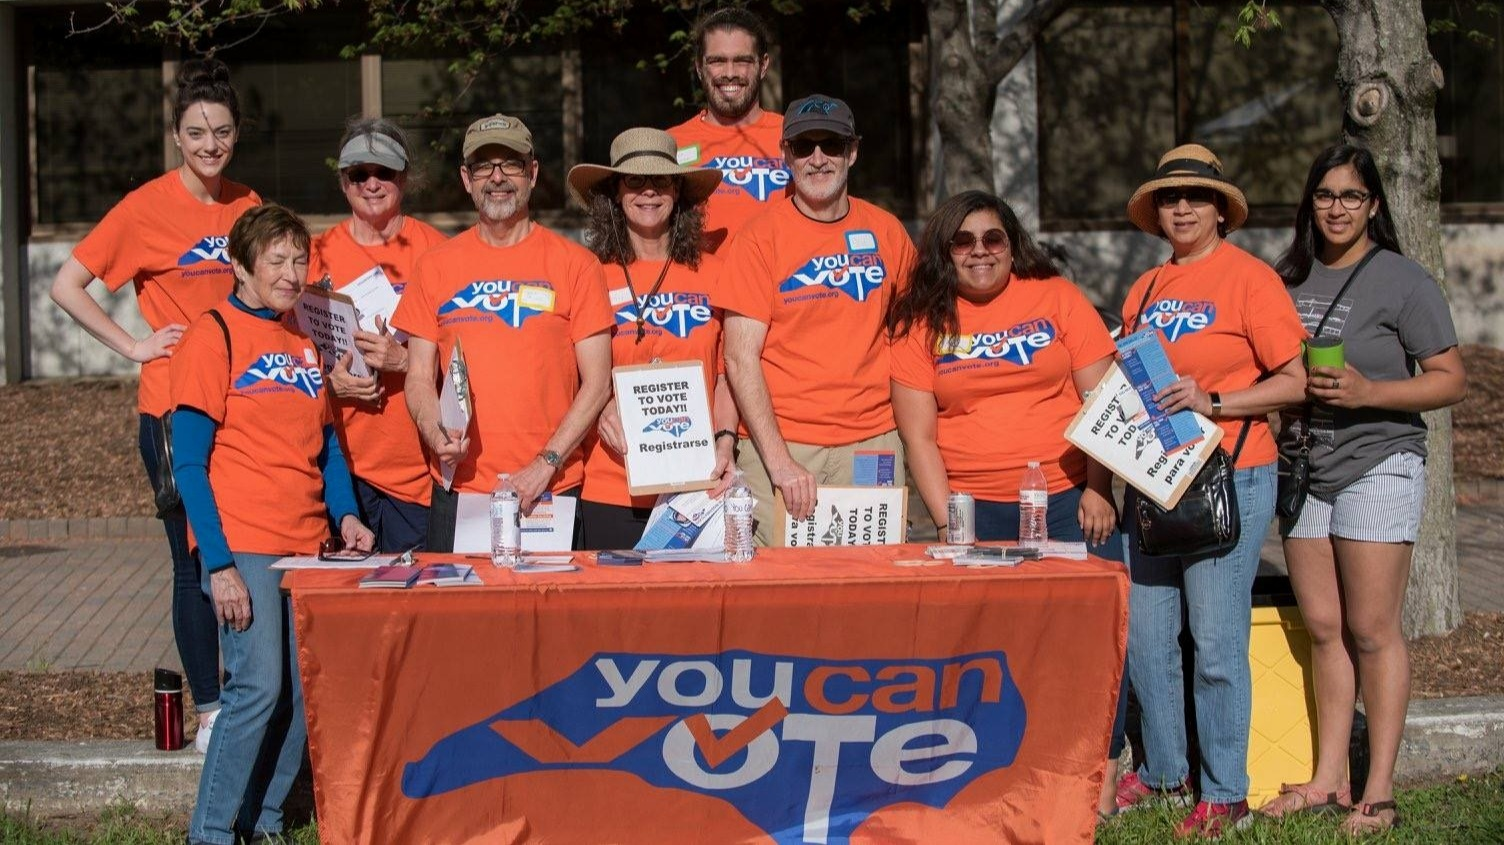 Some of our great volunteers wearing the orange You Can Vote shirts stand in front of a table with a You Can Vote banner and a variety of pamphlets and clipboards.